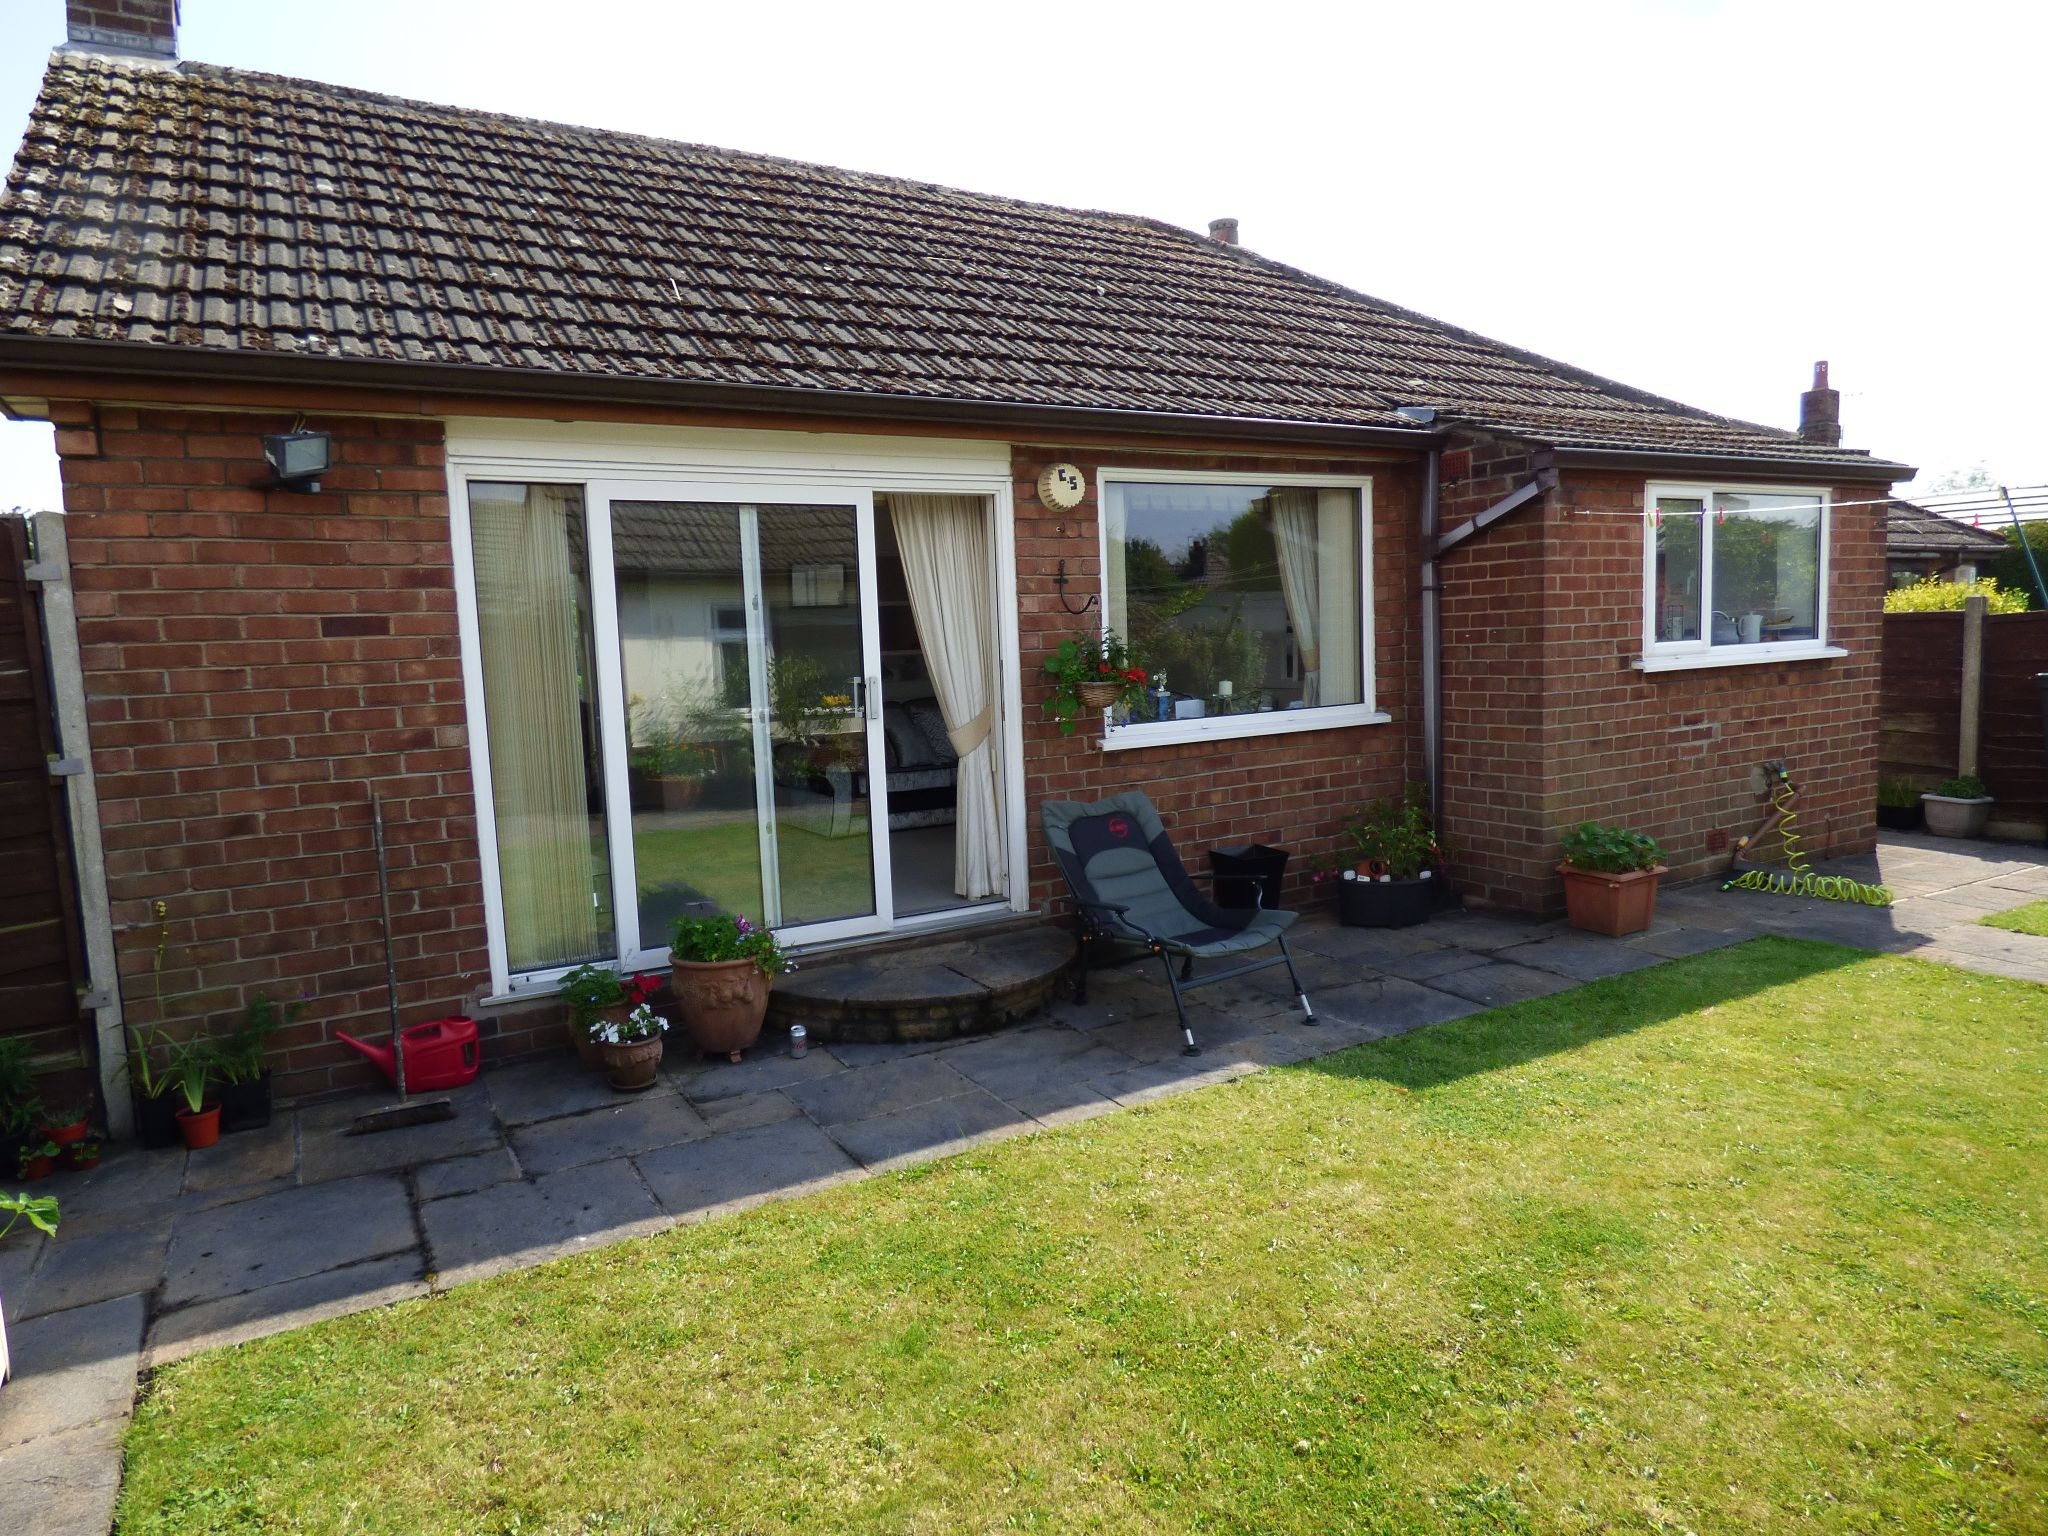 2 Bedroom Detached Bungalow For Sale - Photograph 13